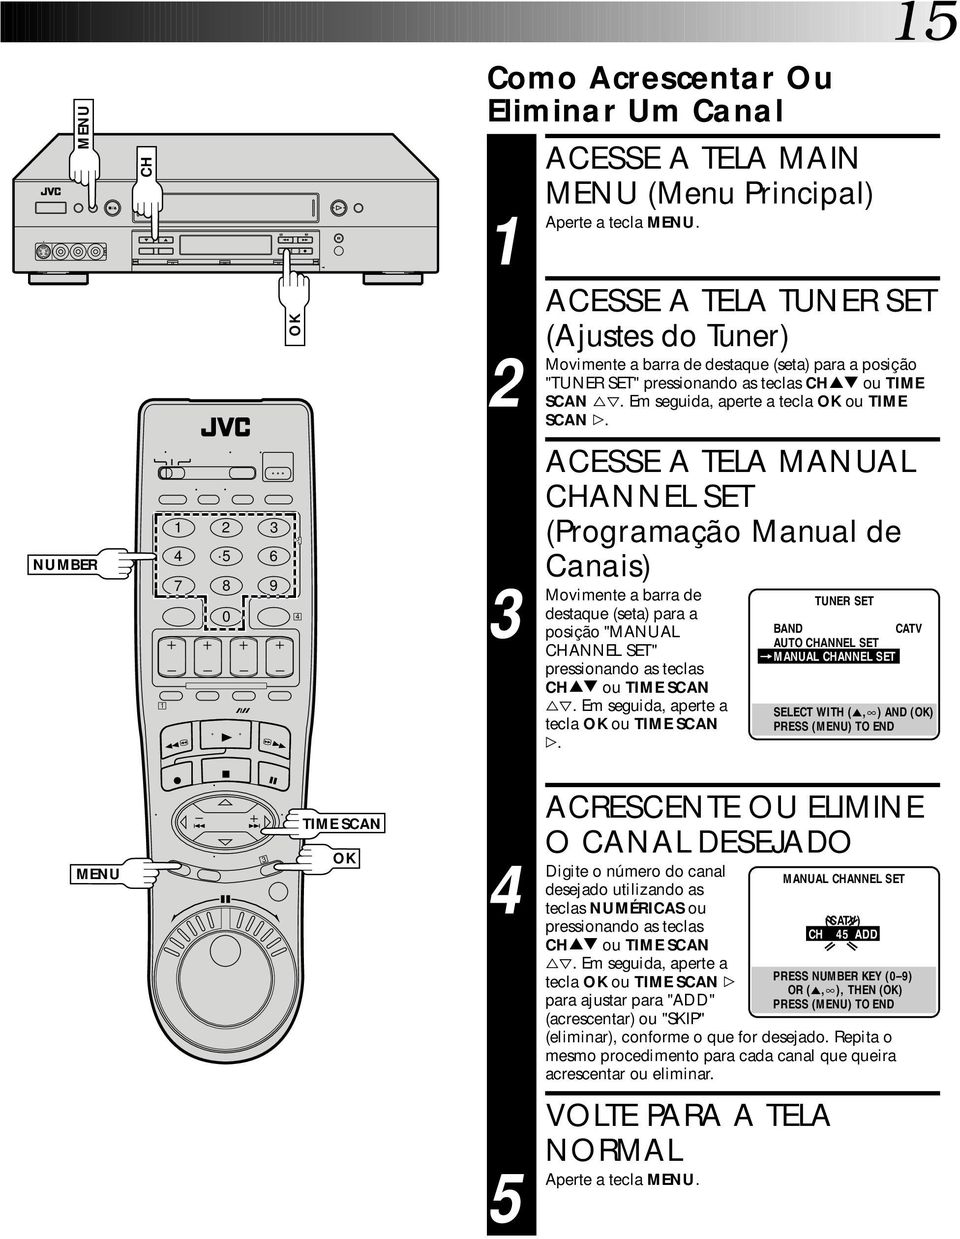 "ACESSE A TELA MANUAL CHANNEL SET (Programação Manual de Canais) a barra de destaque (seta) para a posição ""MANUAL CHANNEL SET"" pressionando as teclas CH ou TIME SCAN %fi."